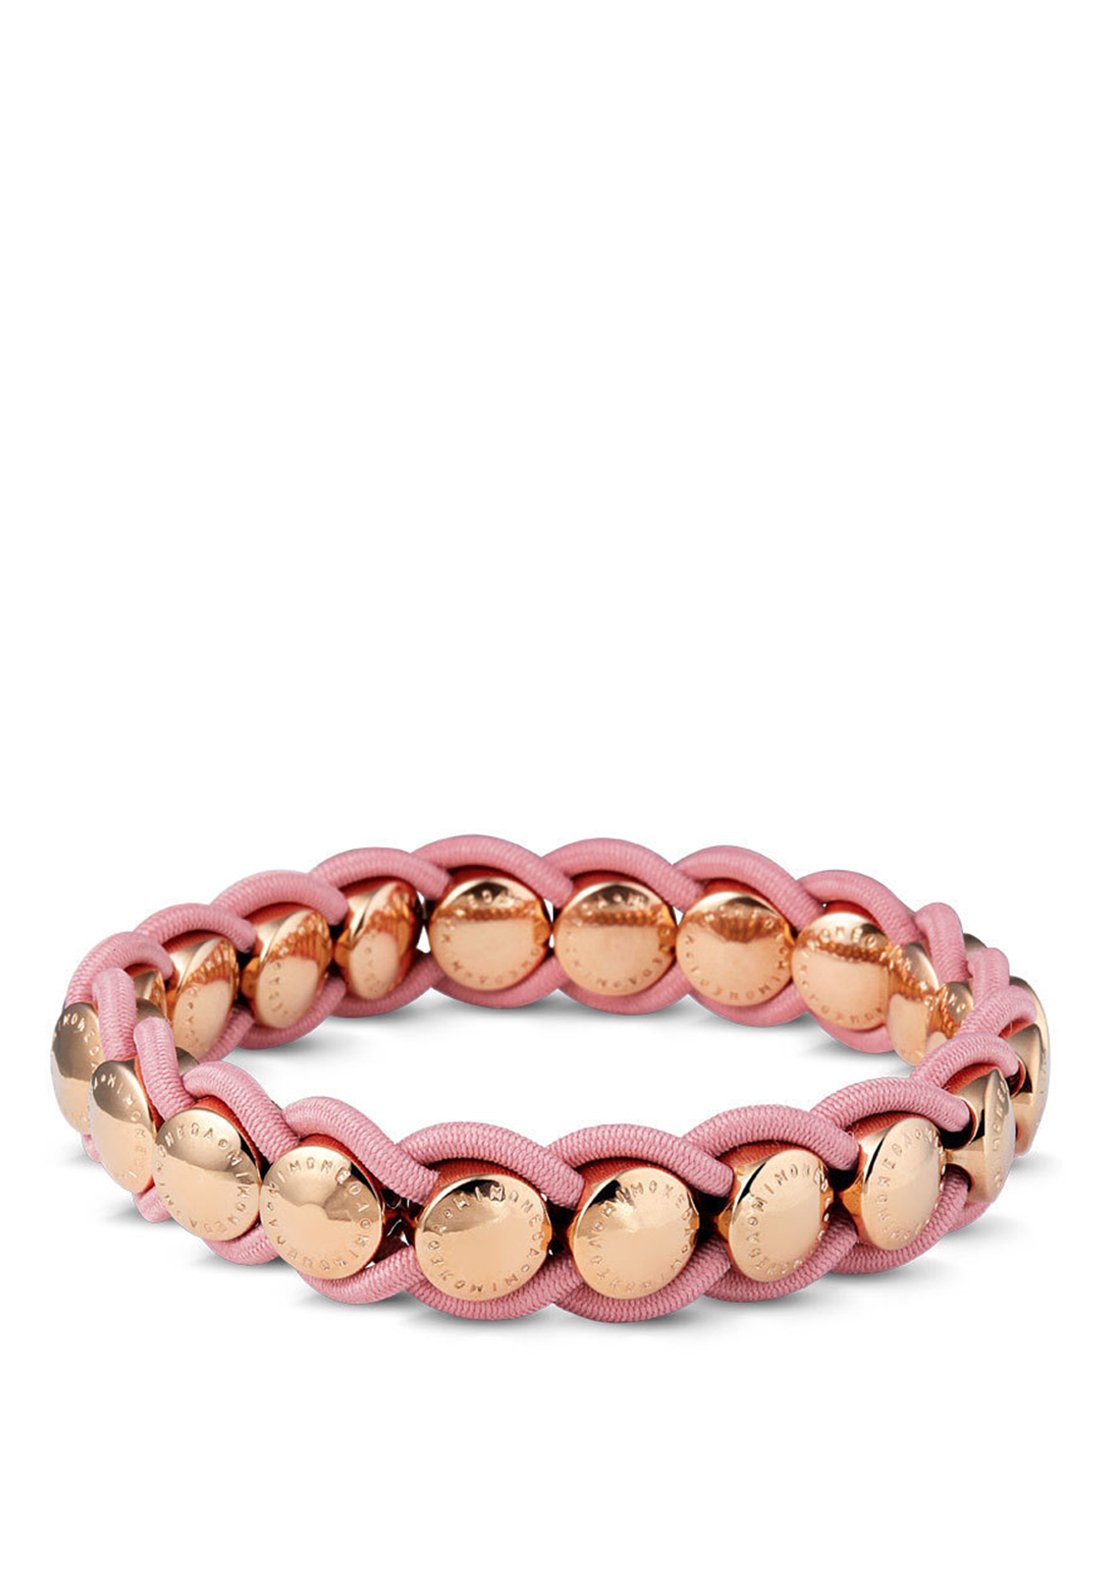 Mi Moneda Valencia Bracelet, Rose Gold and Pink